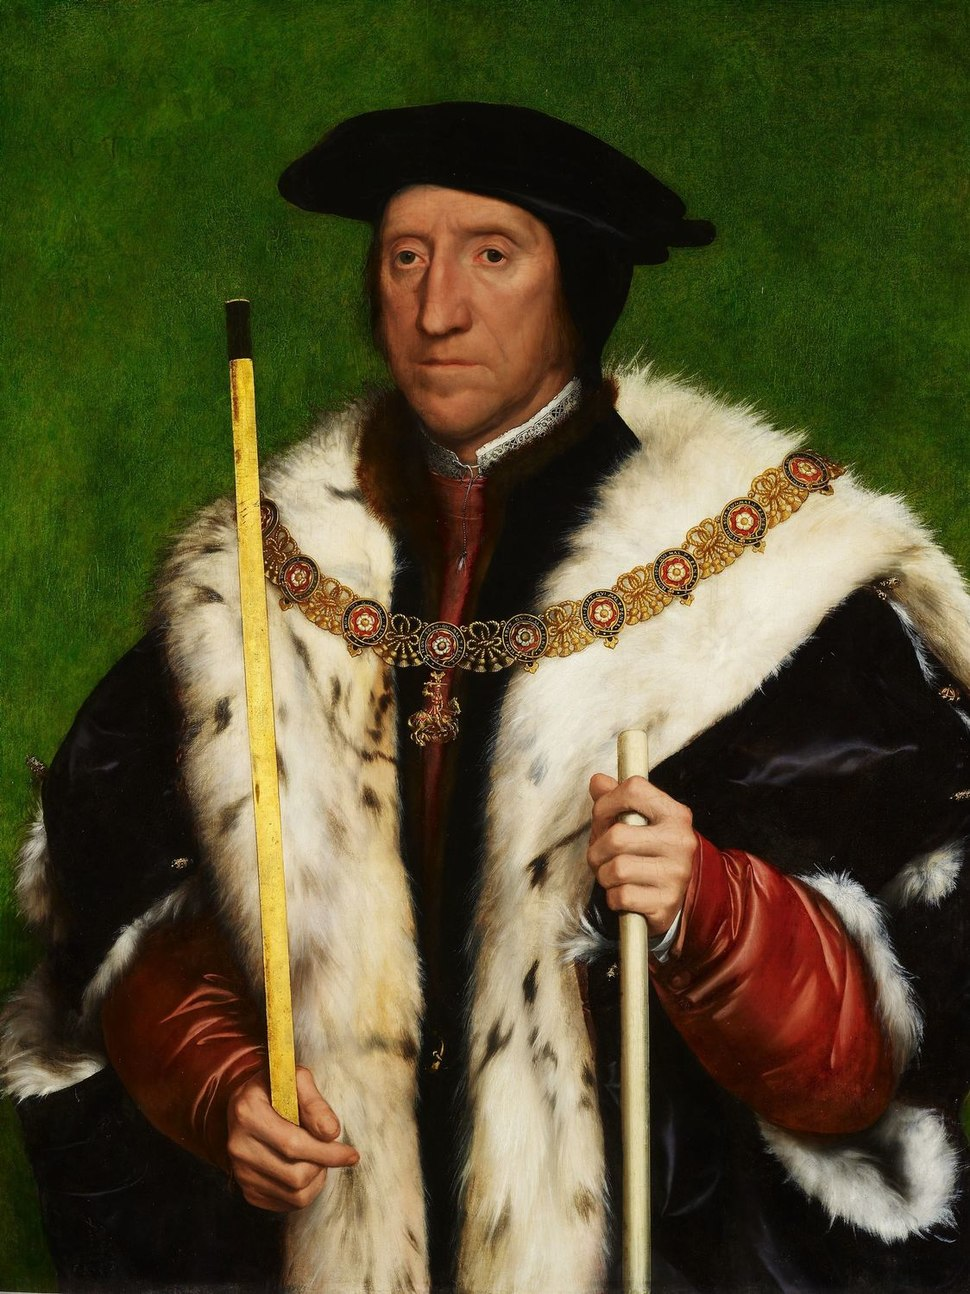 Hans Holbein the Younger - Thomas Howard, 3rd Duke of Norfolk (Royal Collection)